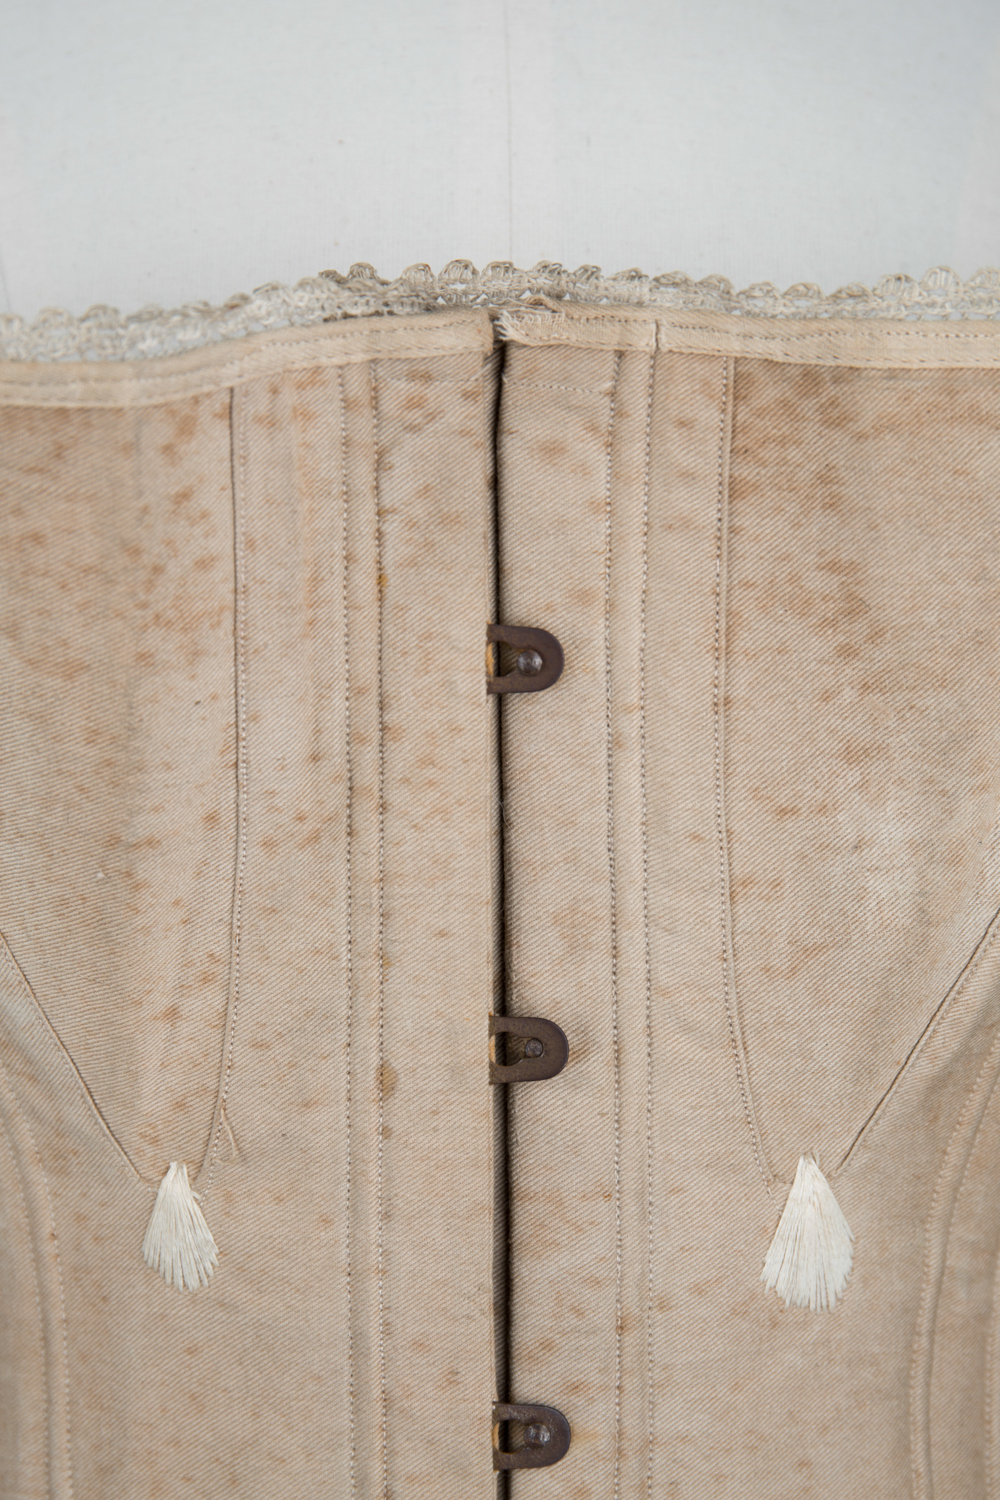 Ecru Cotton Twill Corset With Gores & White Flossing Embroidery, c. 1870s, Great Britain. The Underpinnings Museum. Photography by Tigz Rice.